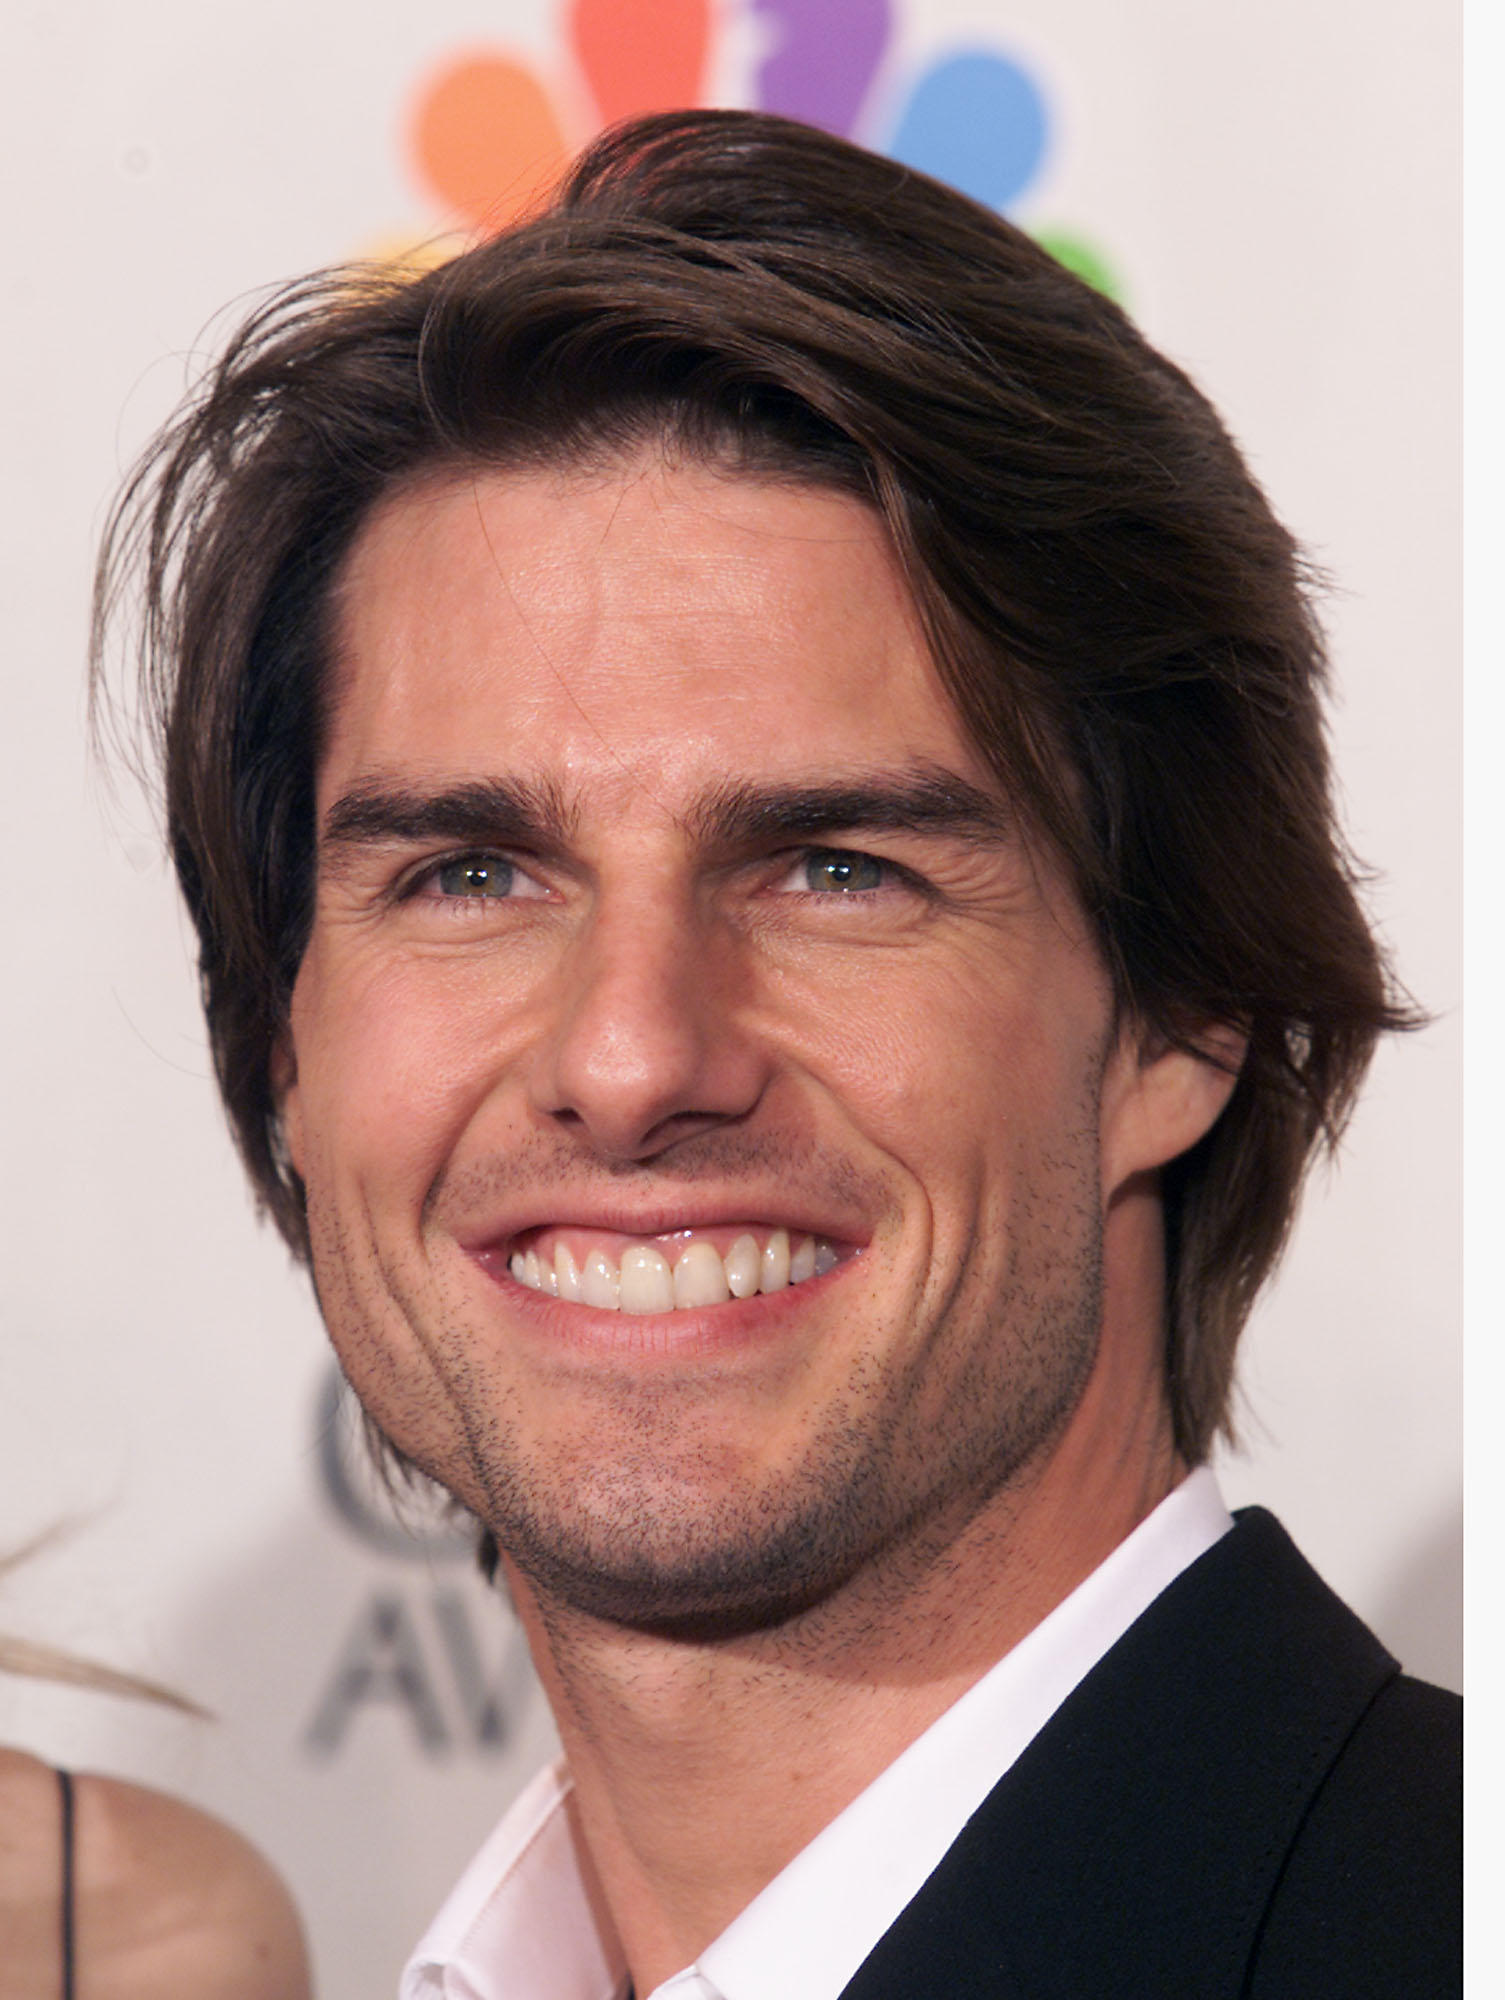 Sexiest Man Alive 1990: Tom Cruise